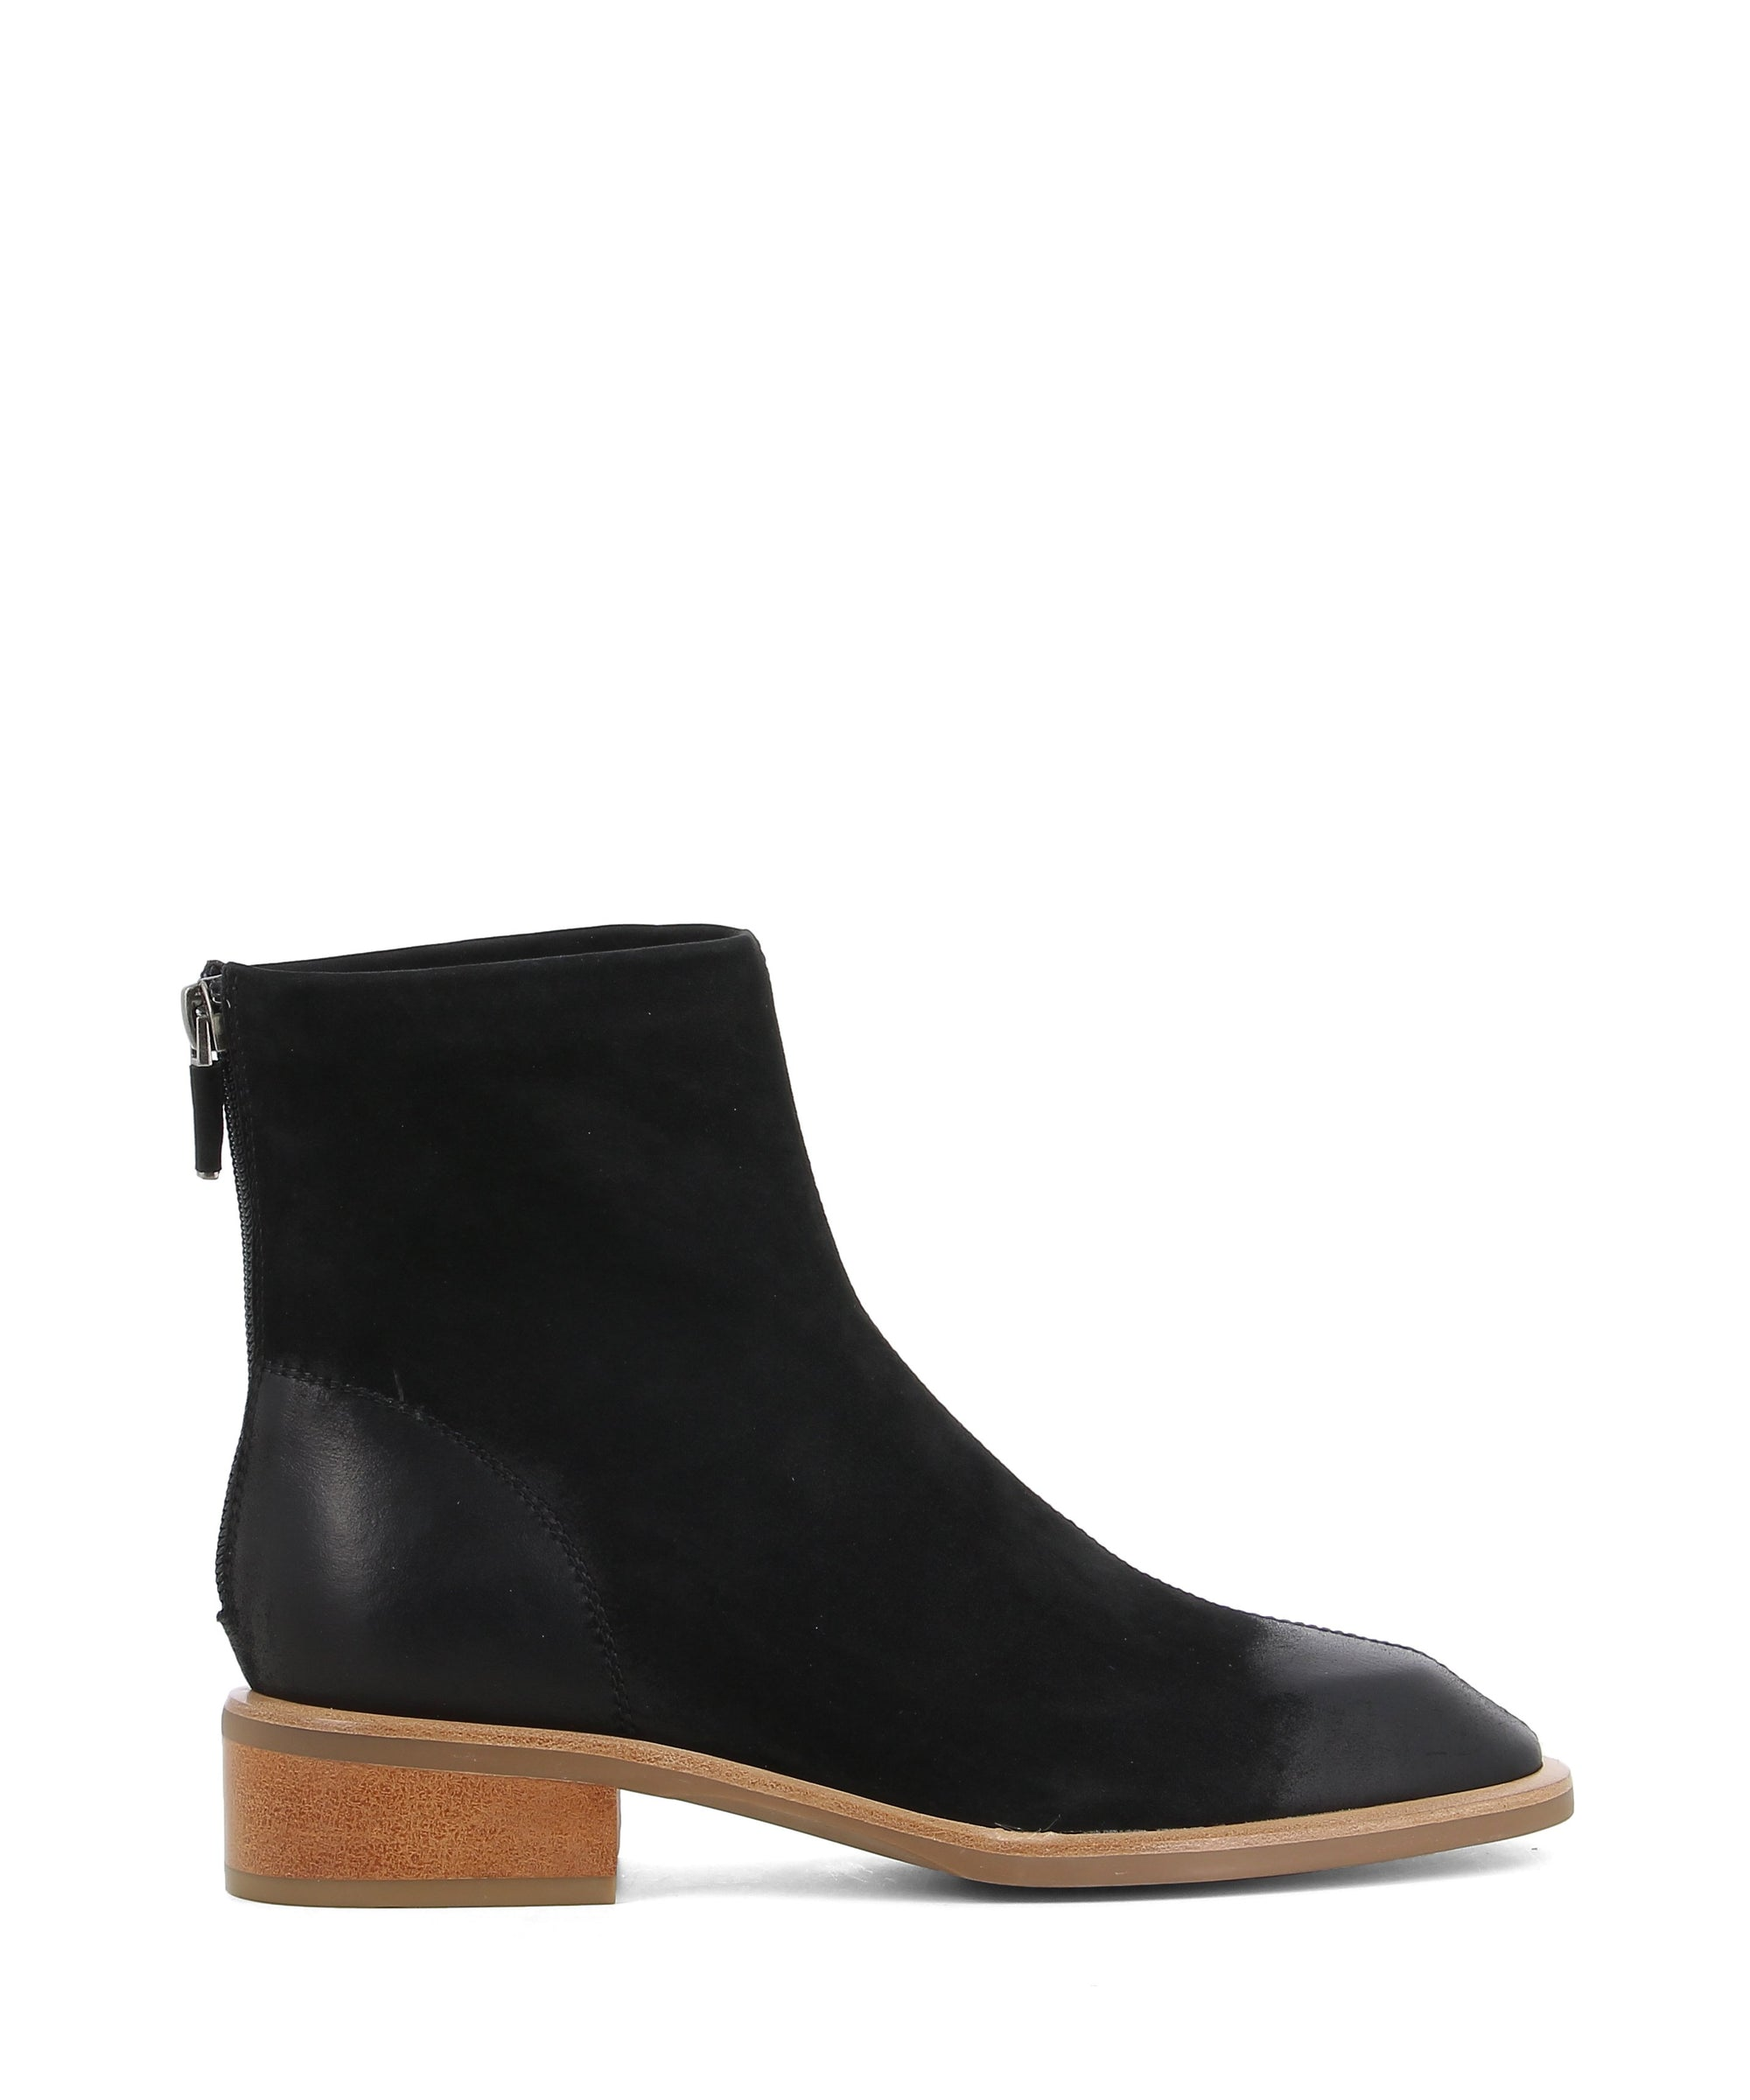 A black nubuck leather ankle by Neo X featuring a burnished round toe, back zipper fastening and a 4cm block heel. This style runs true to size.